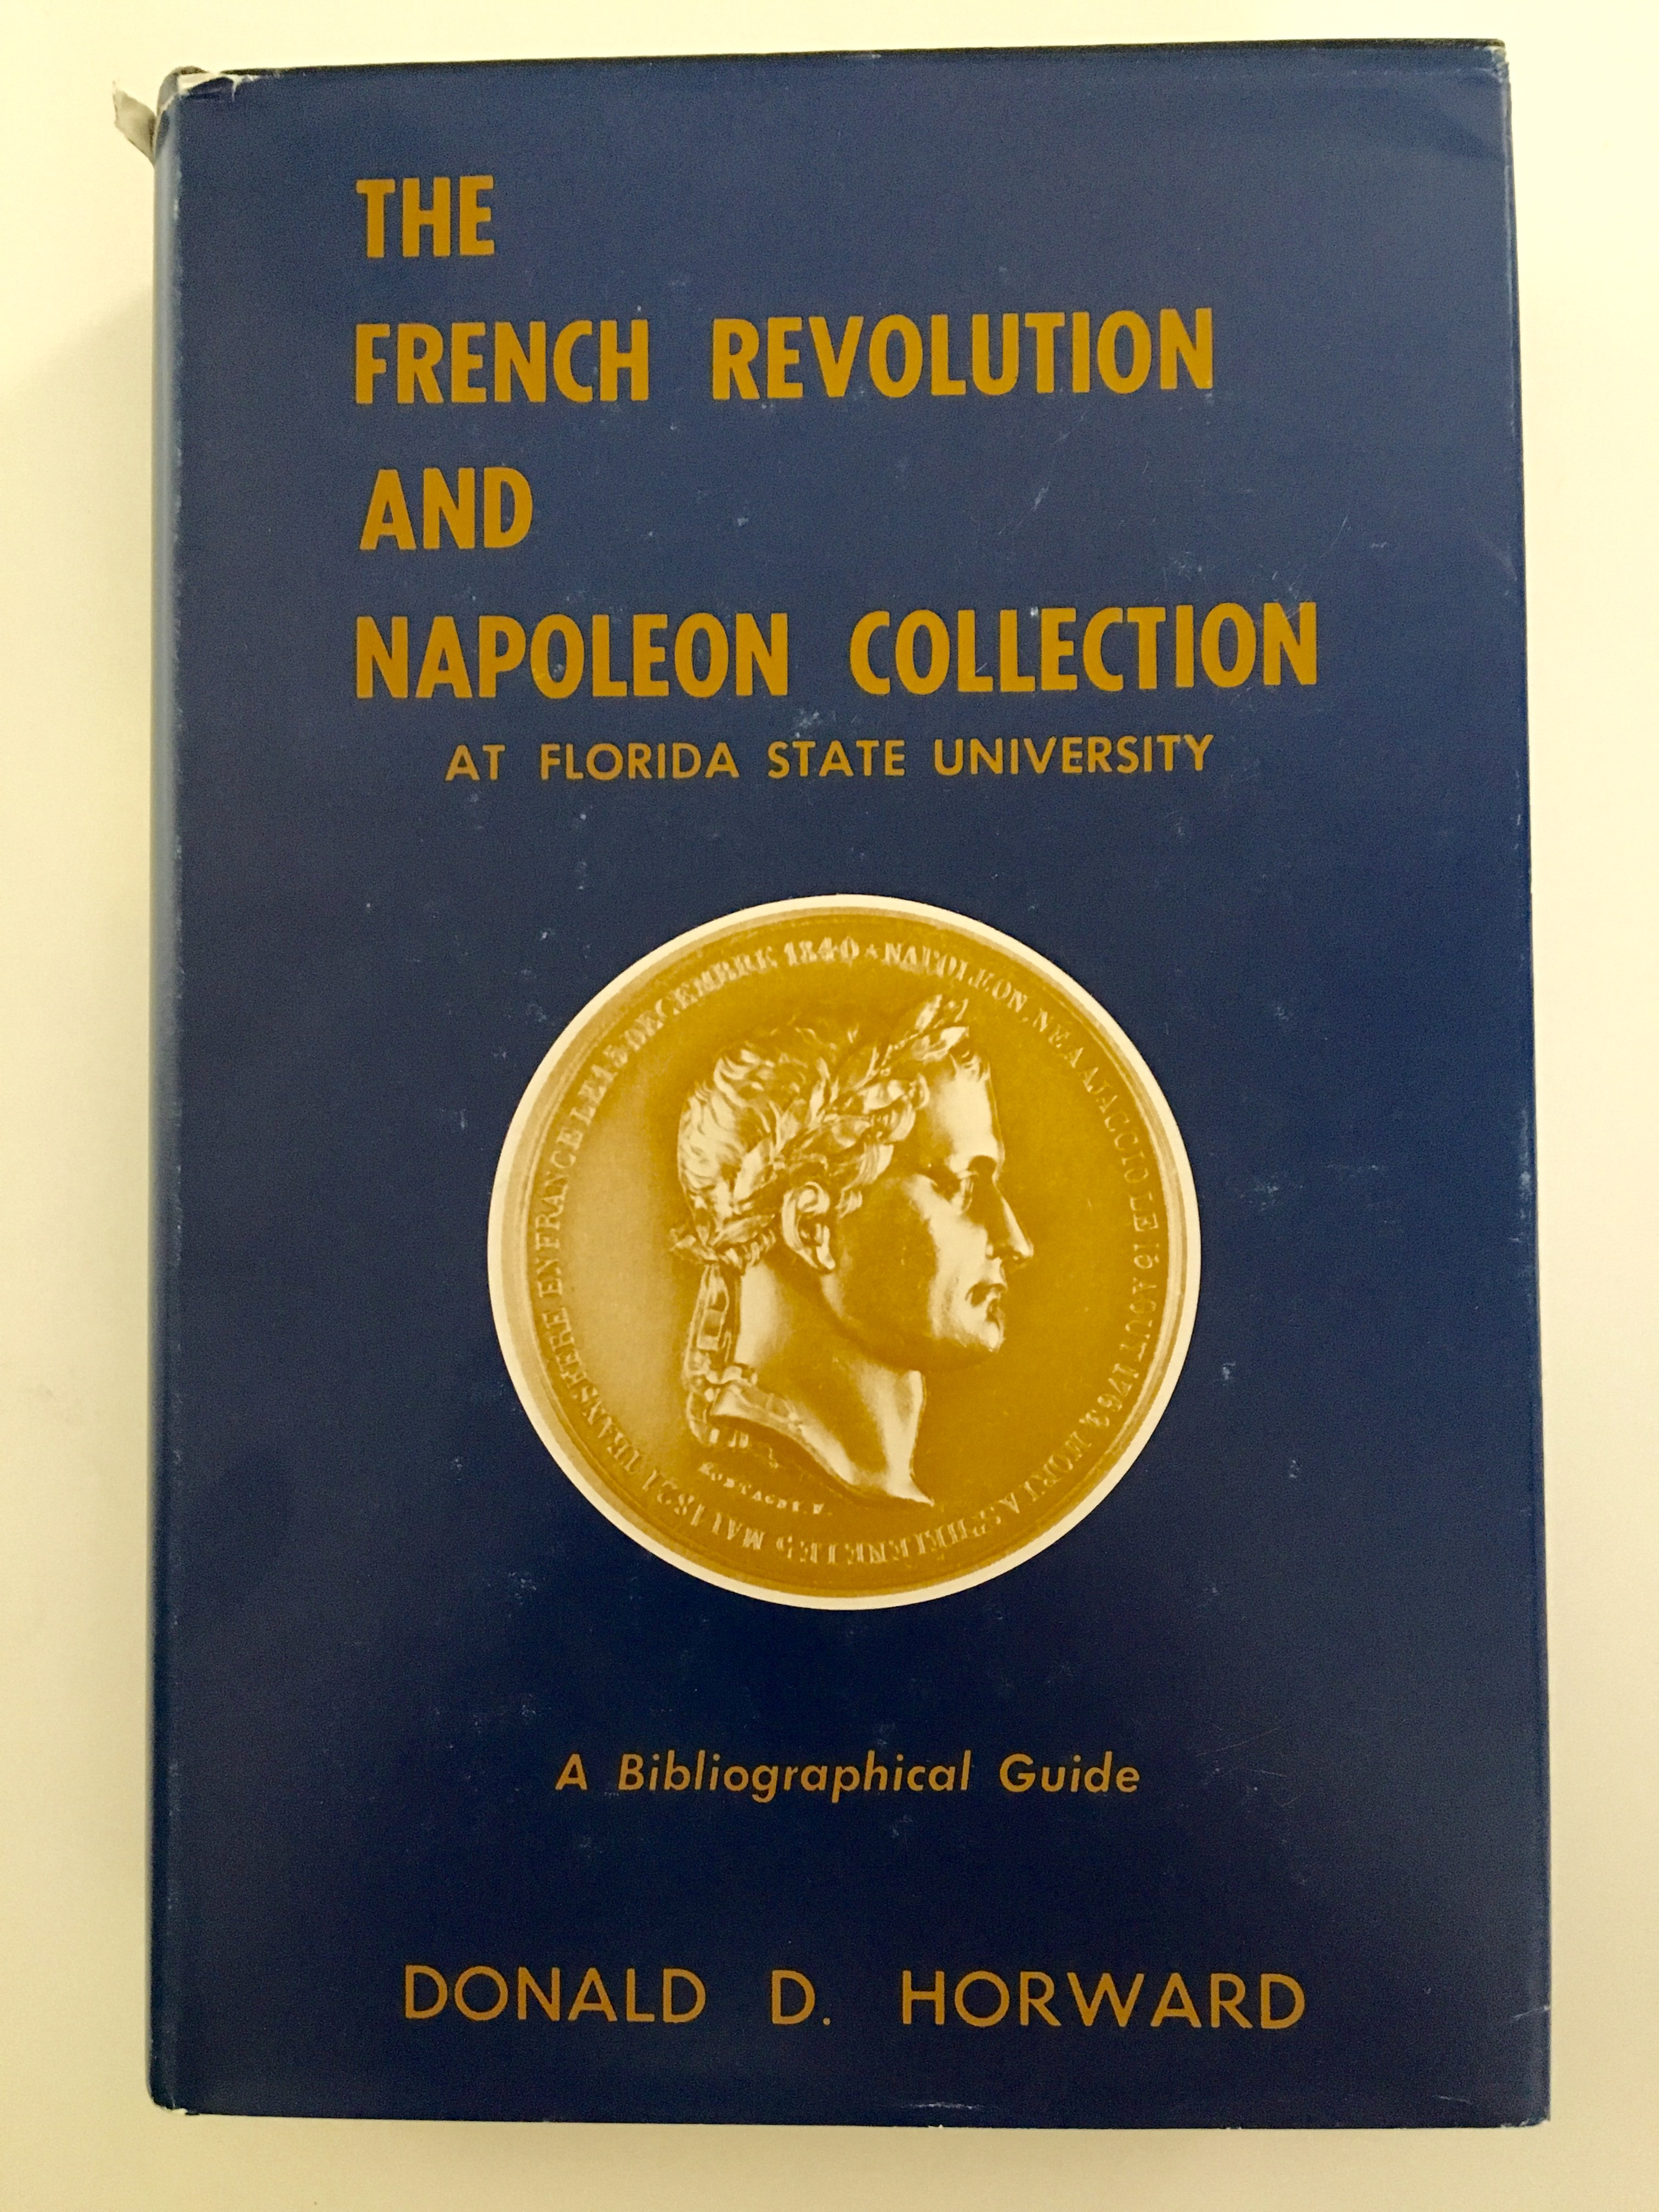 Book cover of French Revolution and Napoleon Collection by Donald Horward.